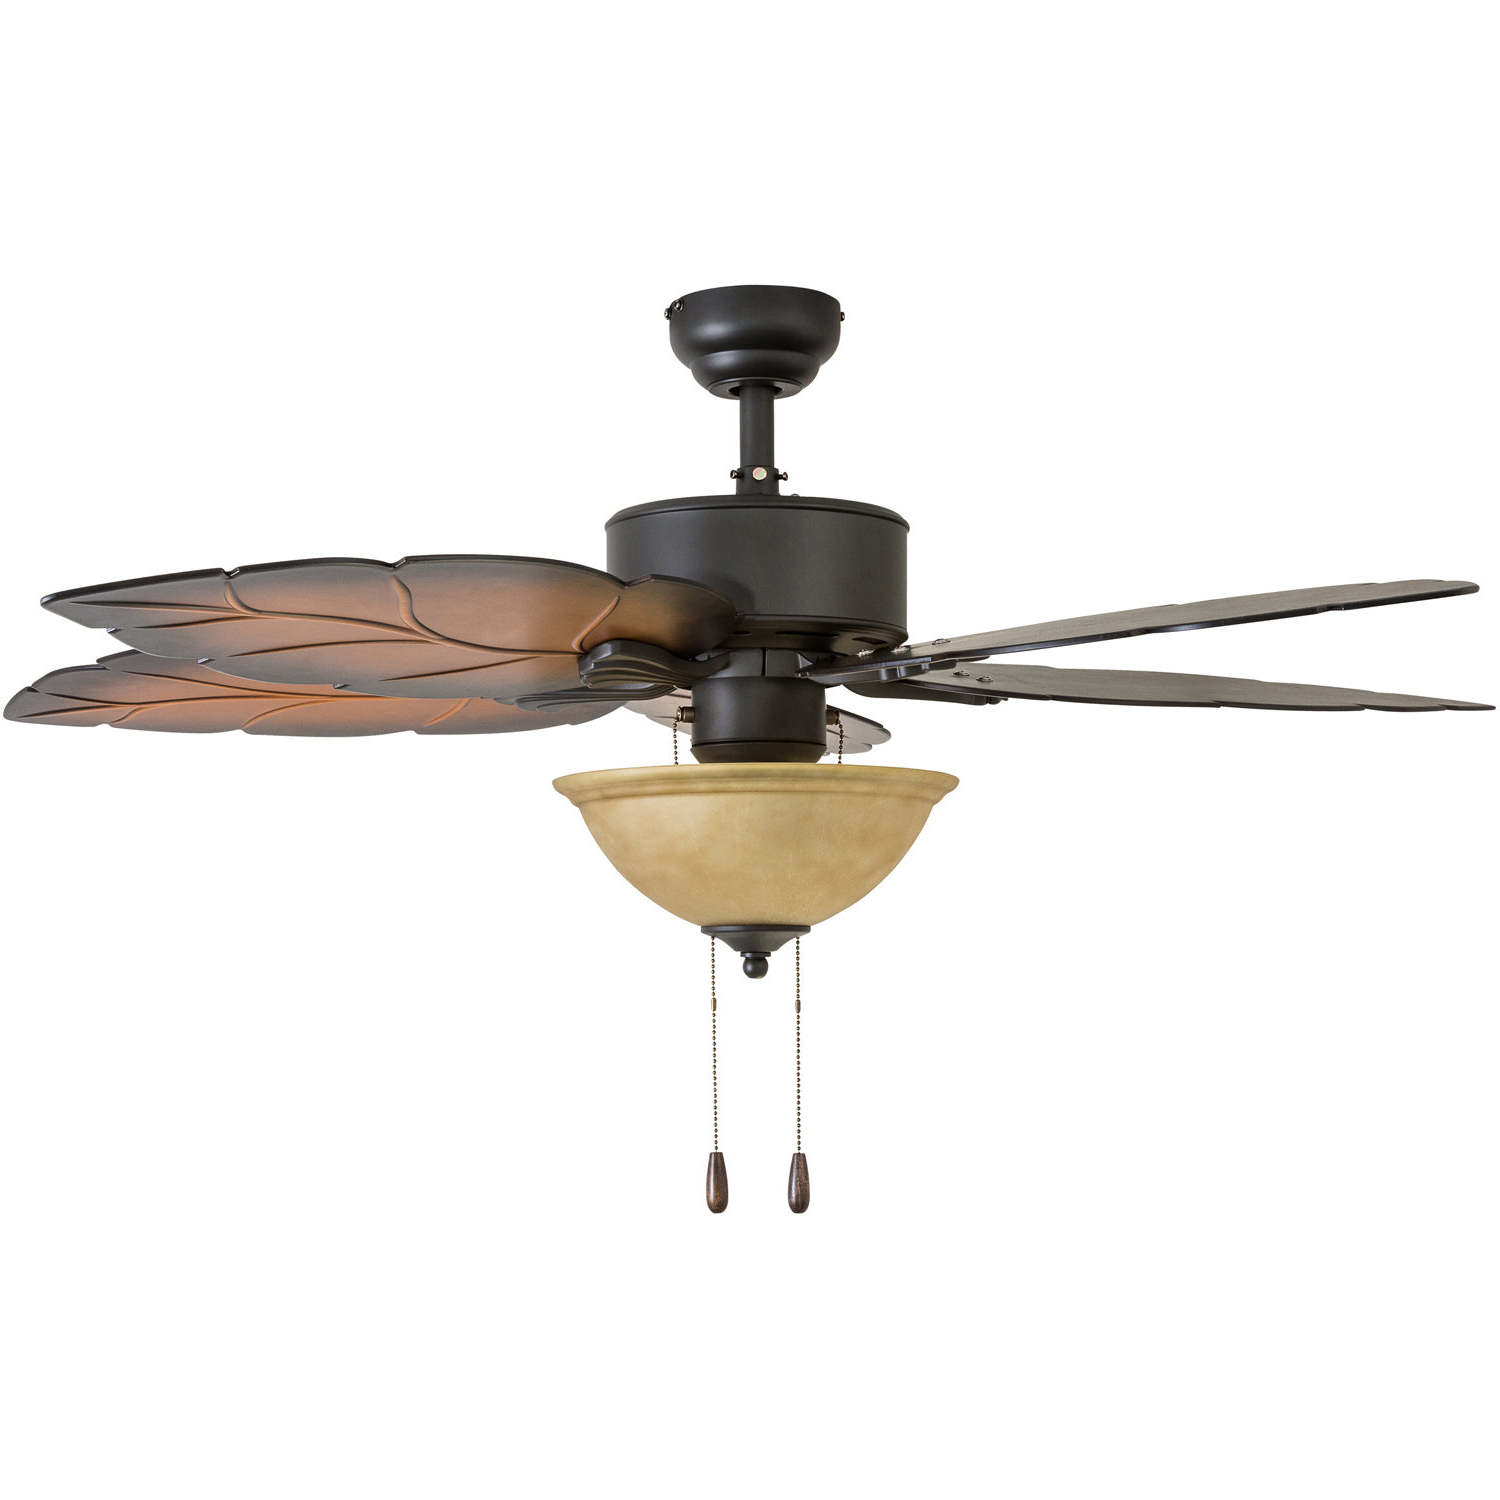 "Mccarthy 5 Blade Ceiling Fans Pertaining To Most Recently Released Bay Isle Home 52"" Simpson 5 Blade Ceiling Fan & Reviews (View 6 of 20)"